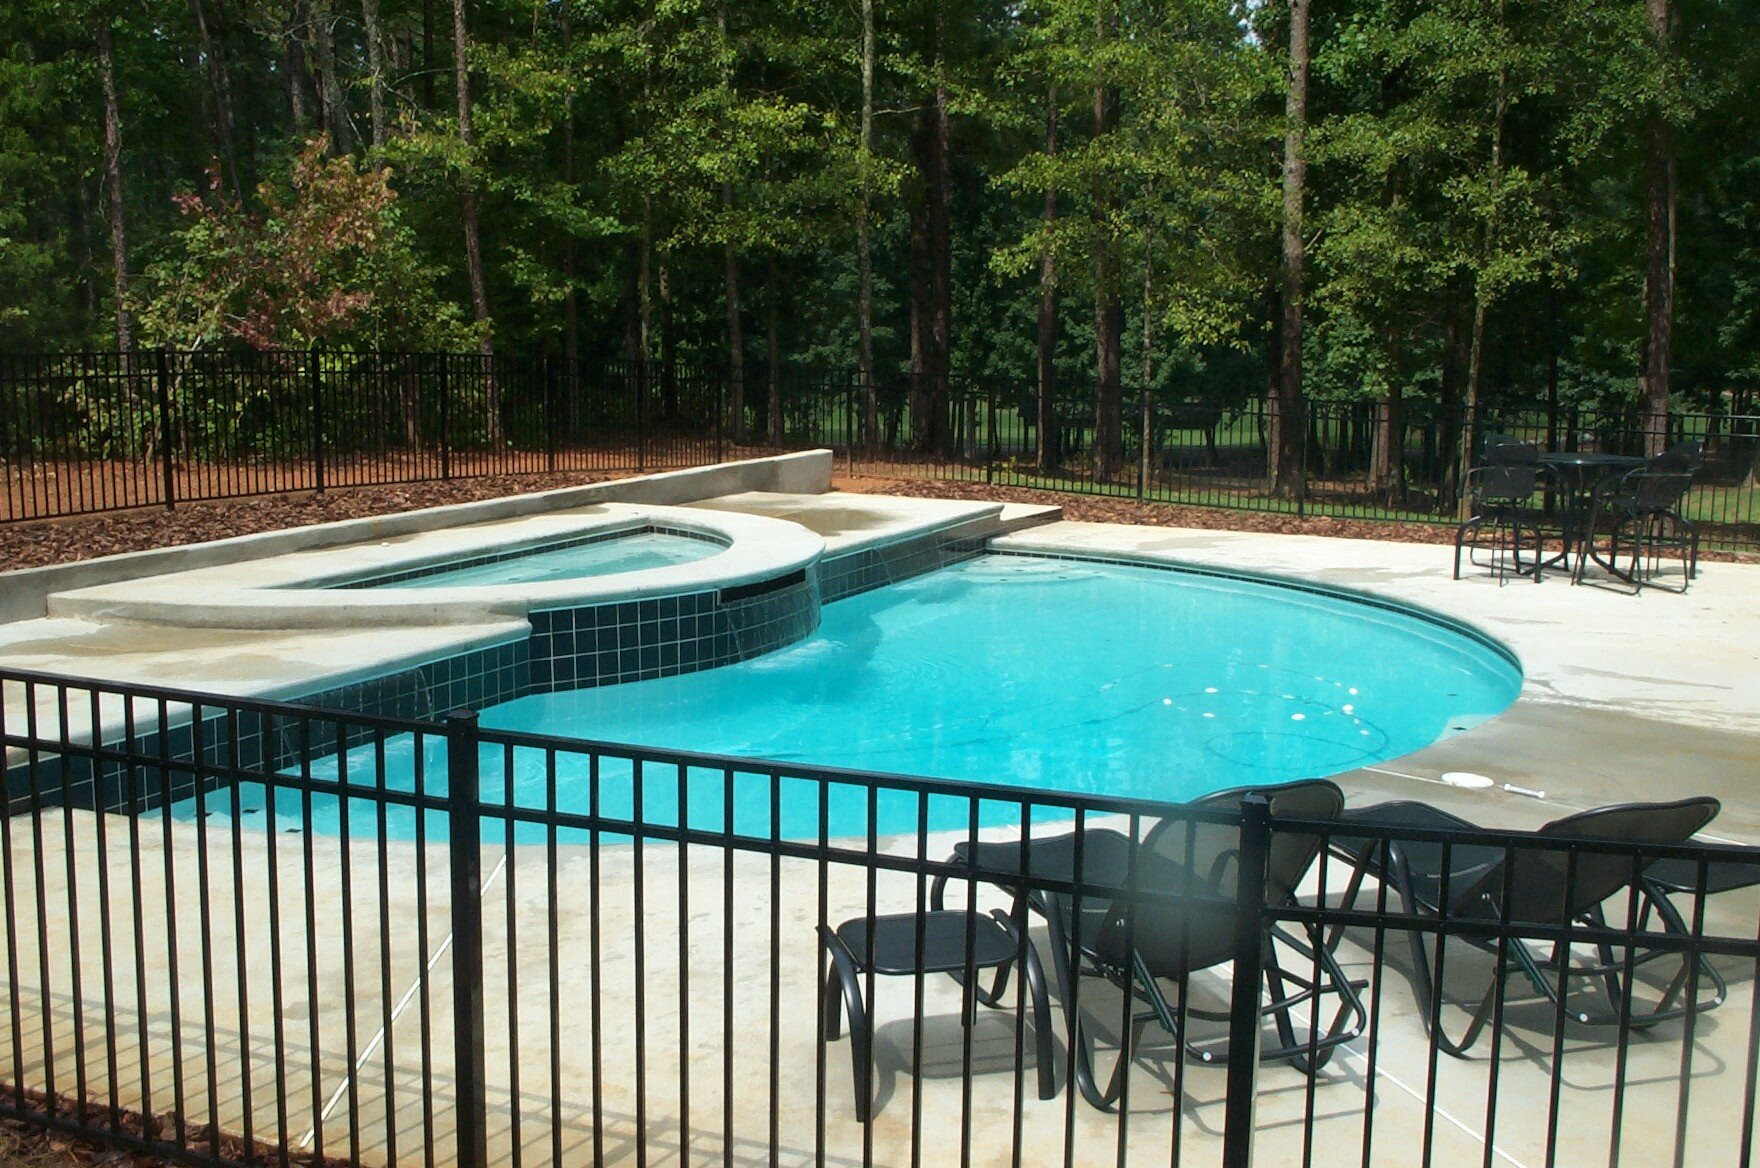 Anthony & Sylvan Pool Fencing